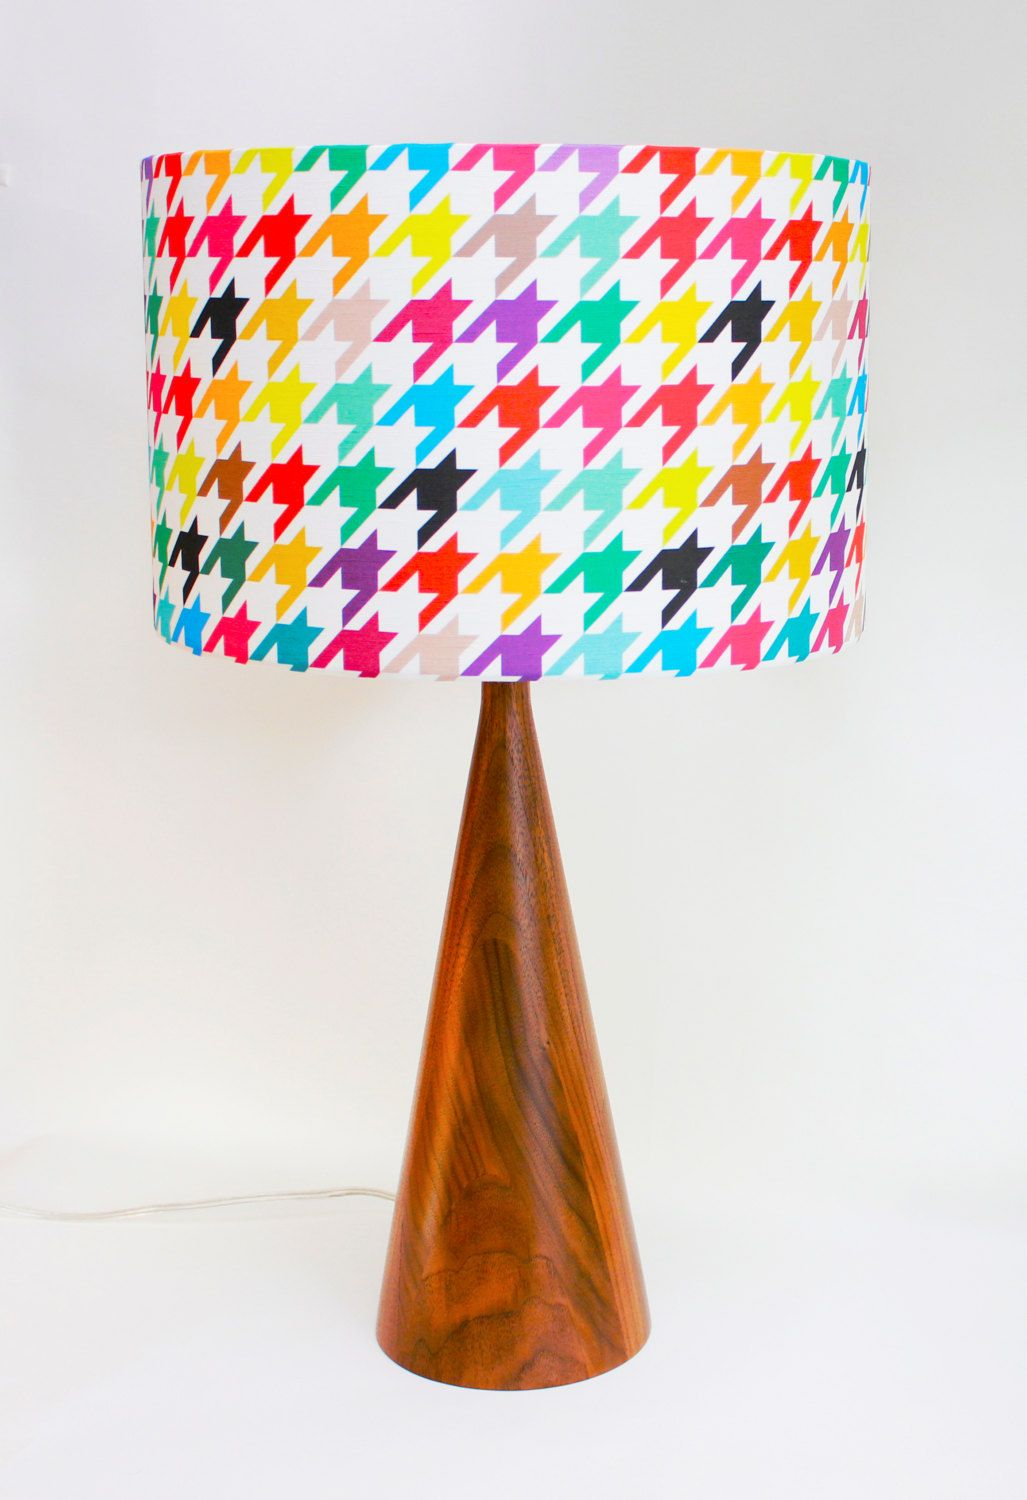 Turned Wood Lamp Base with Houndstooth Lamp Shade | wood | Pinterest ... for Turned Wood Lamp Shade  157uhy